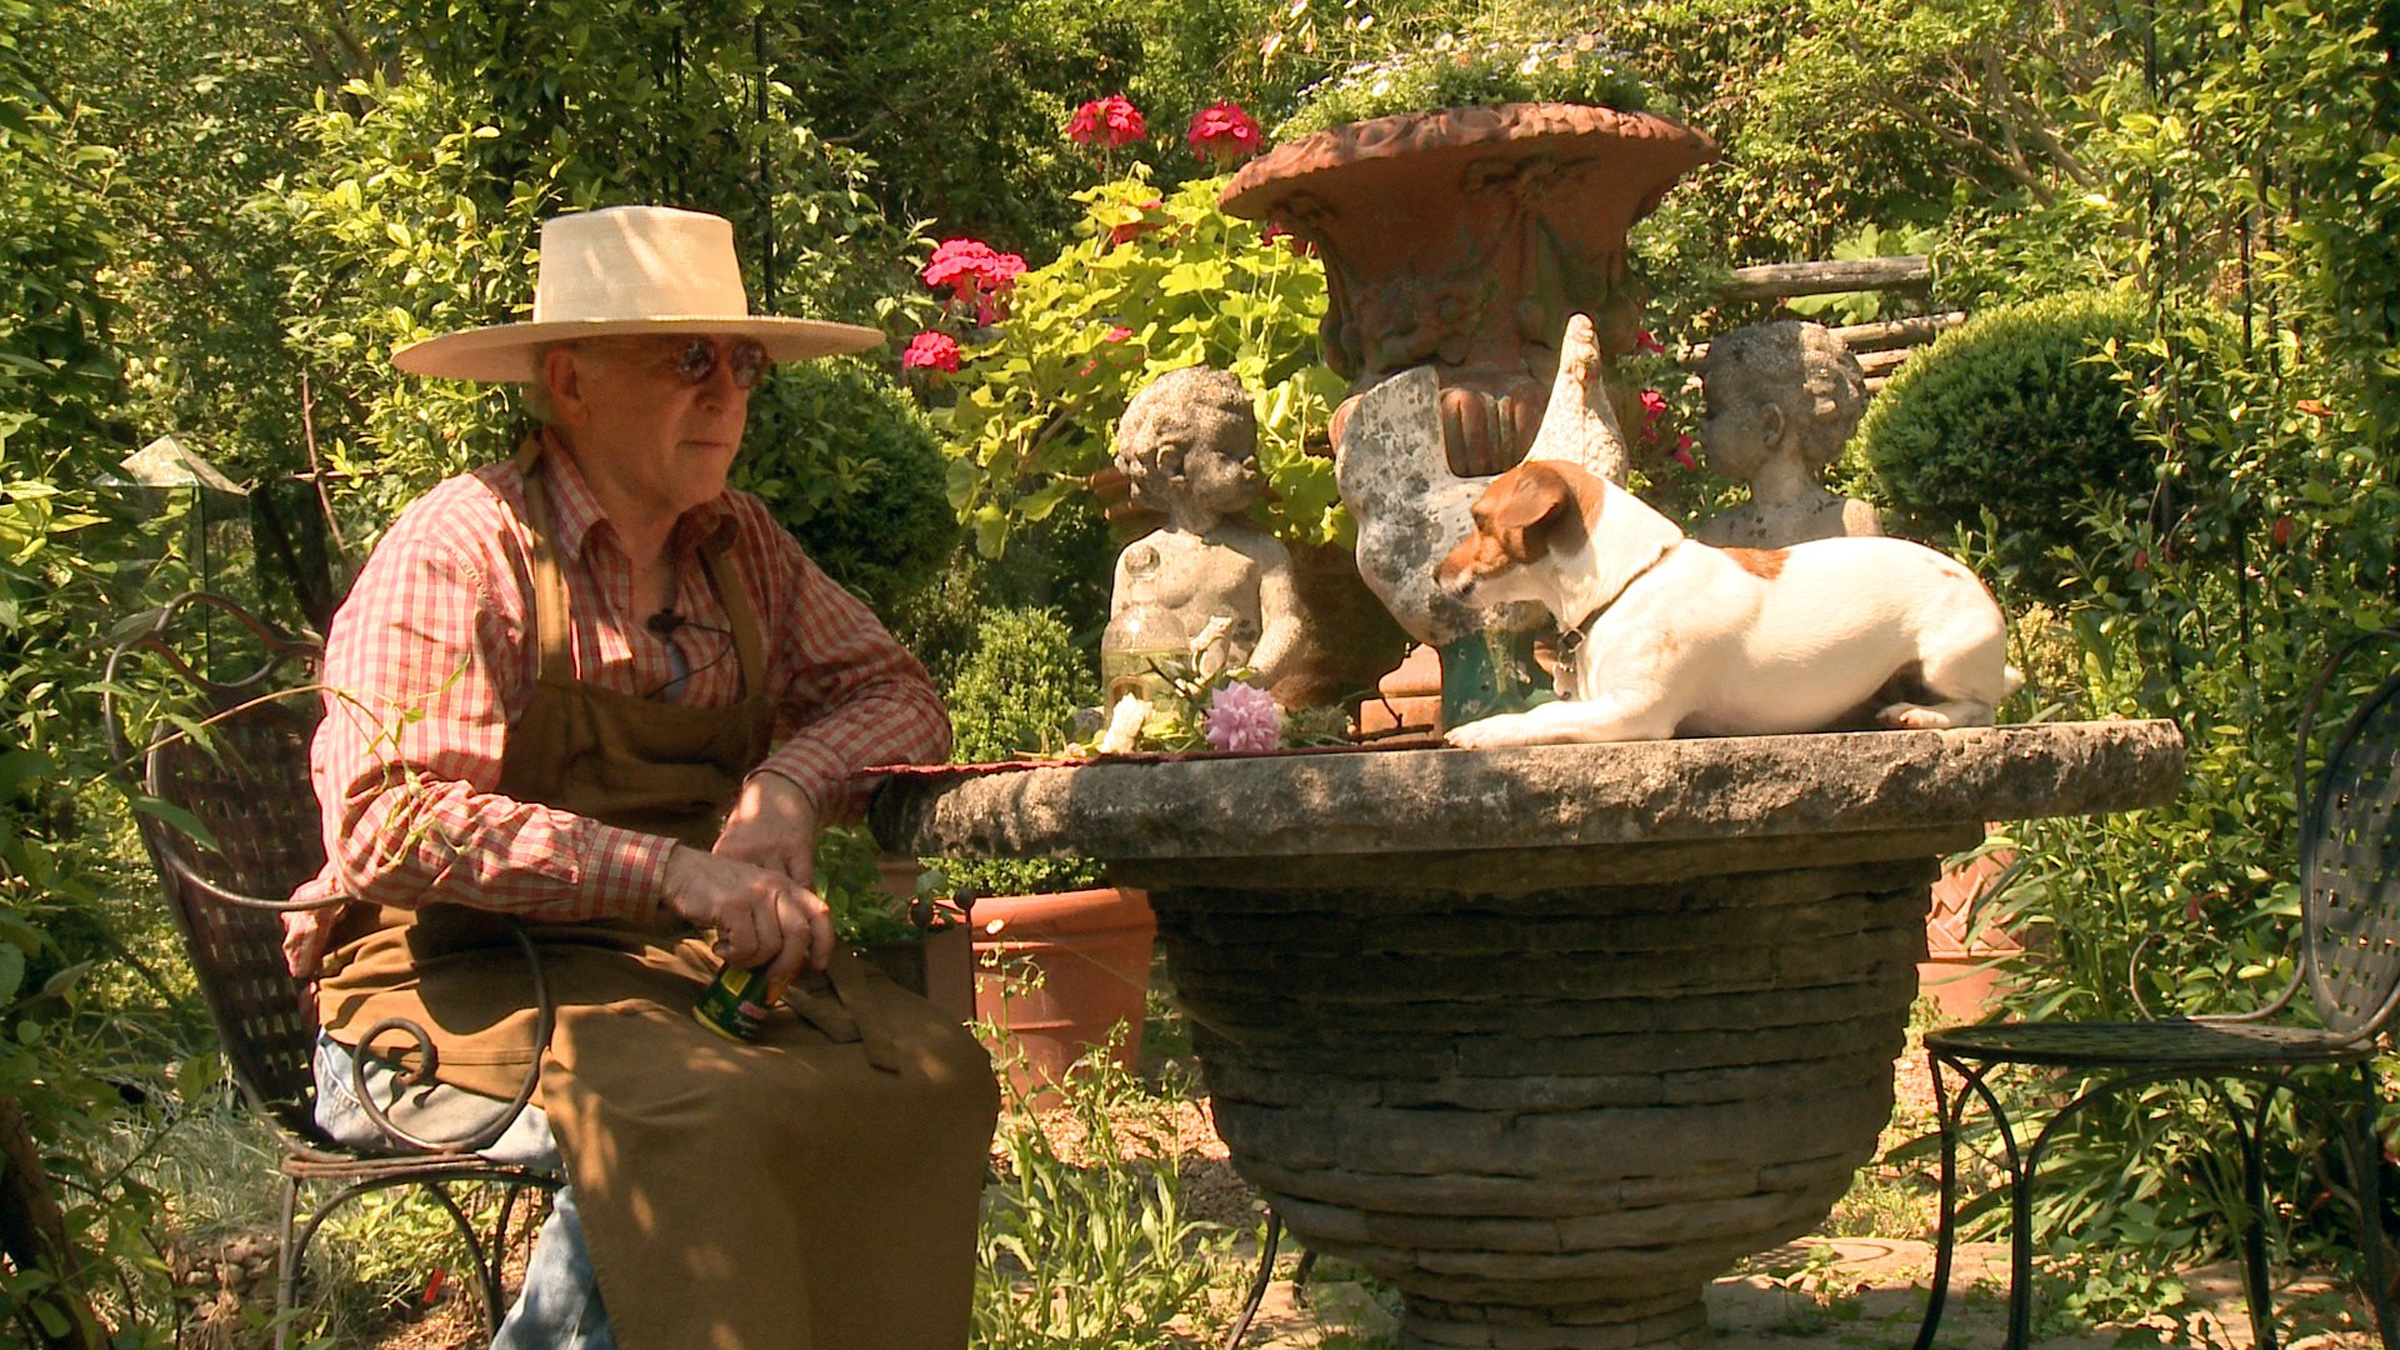 Ryan Gainey is a self taught plantsman and garden designer featured in the documentary The Well-Placed Weed: The Bountiful Gardens of Ryan Gainey. He loved his dogs like they were his children.